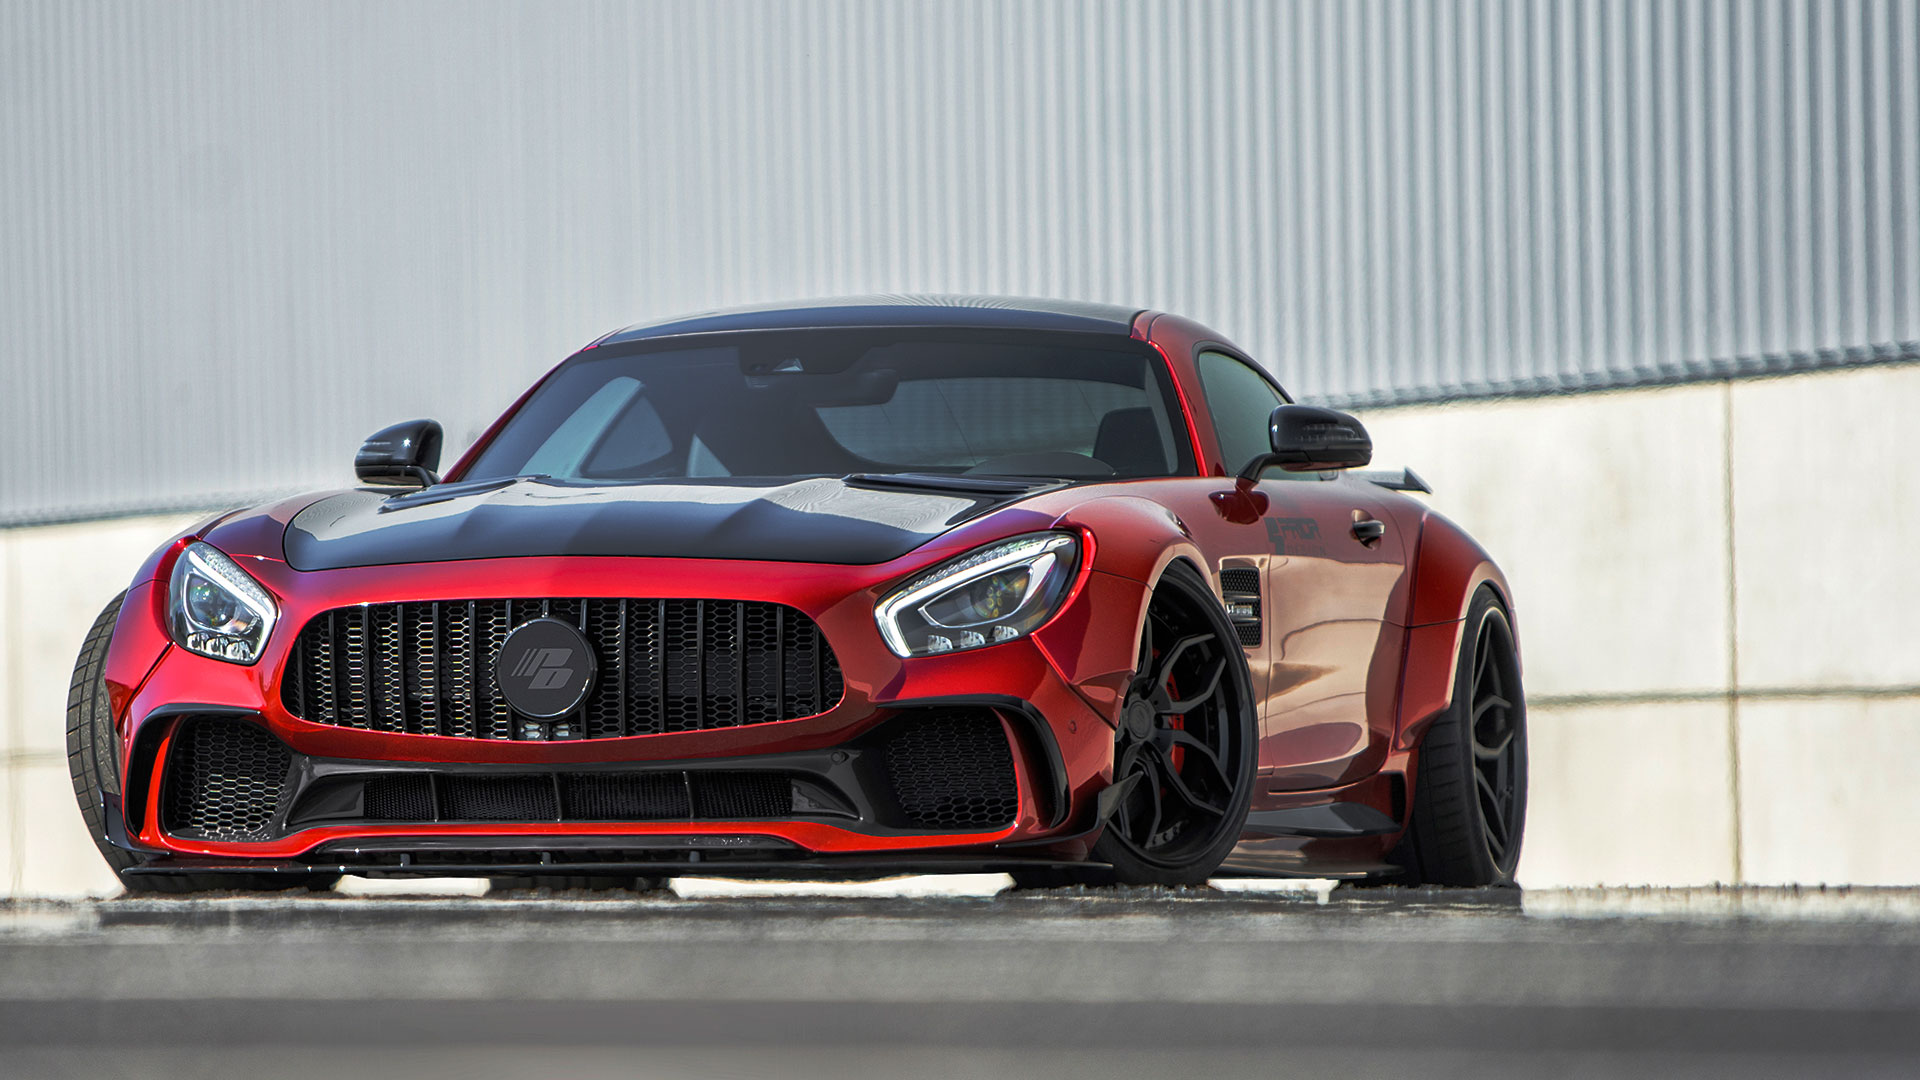 mercedes gt gts gtc amg tuning pd700gtr wide body aerodynamic kit pd3 forged wheels in. Black Bedroom Furniture Sets. Home Design Ideas